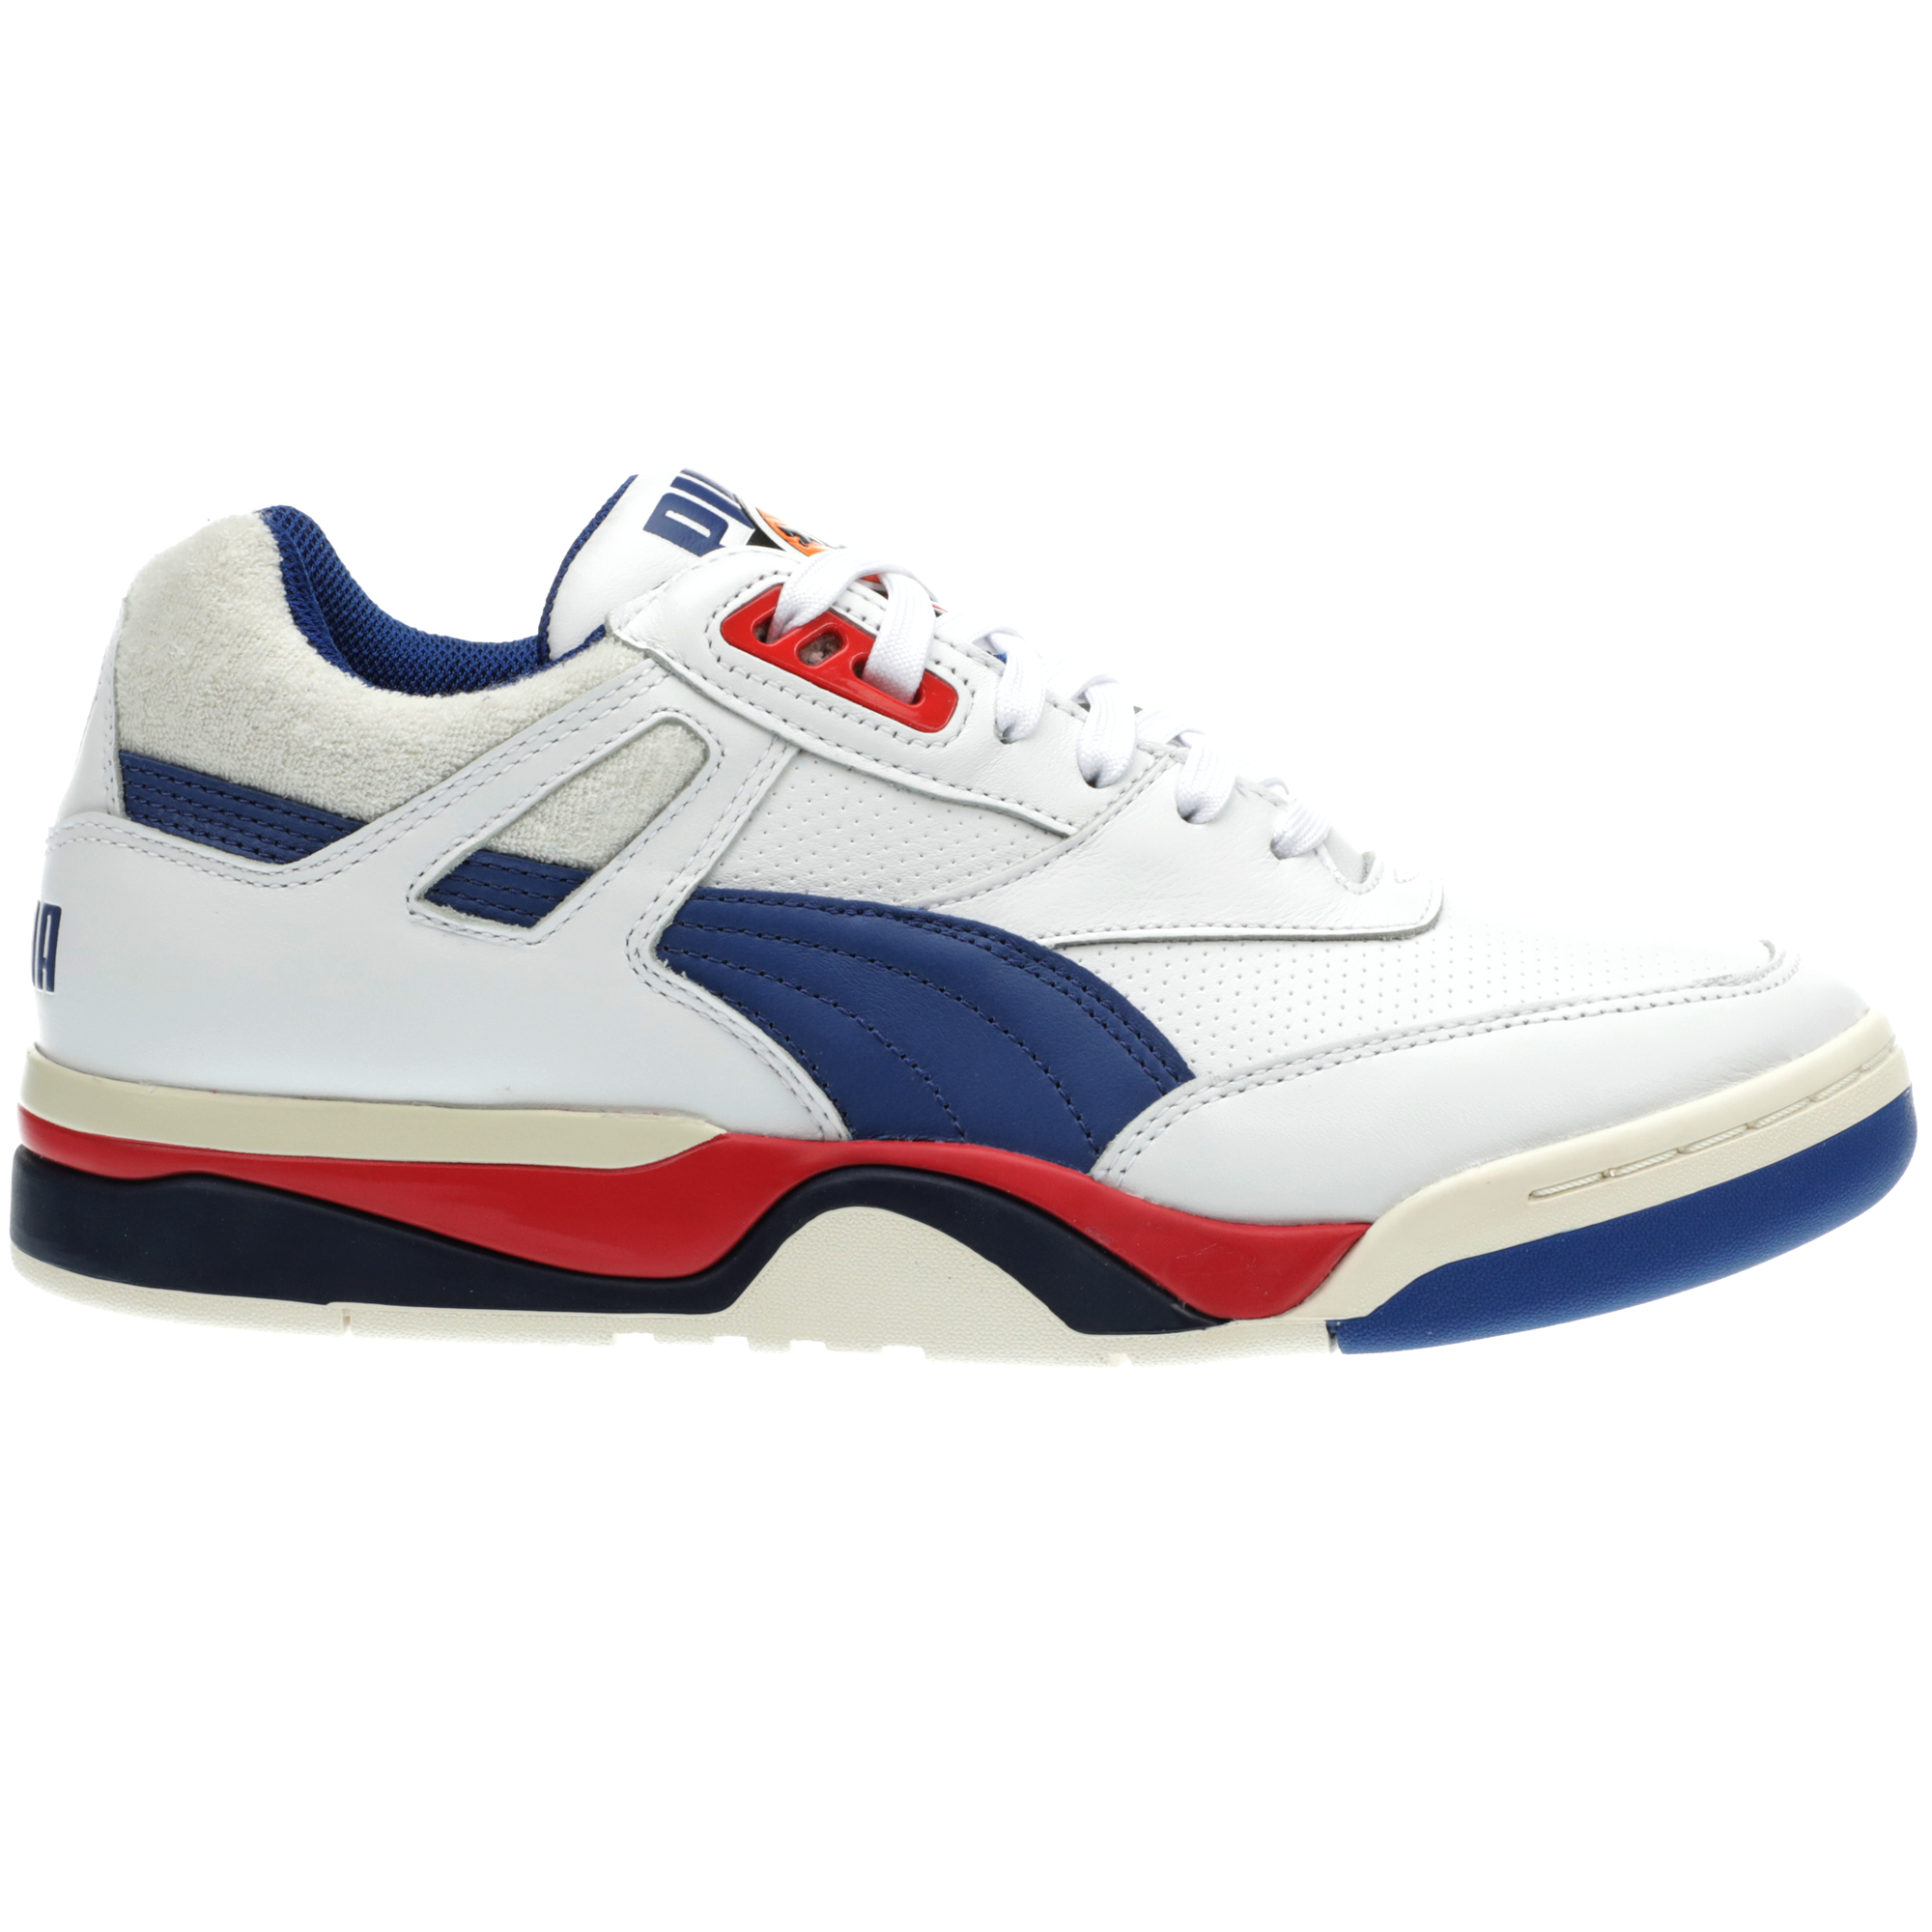 Puma Palace Guard OG White